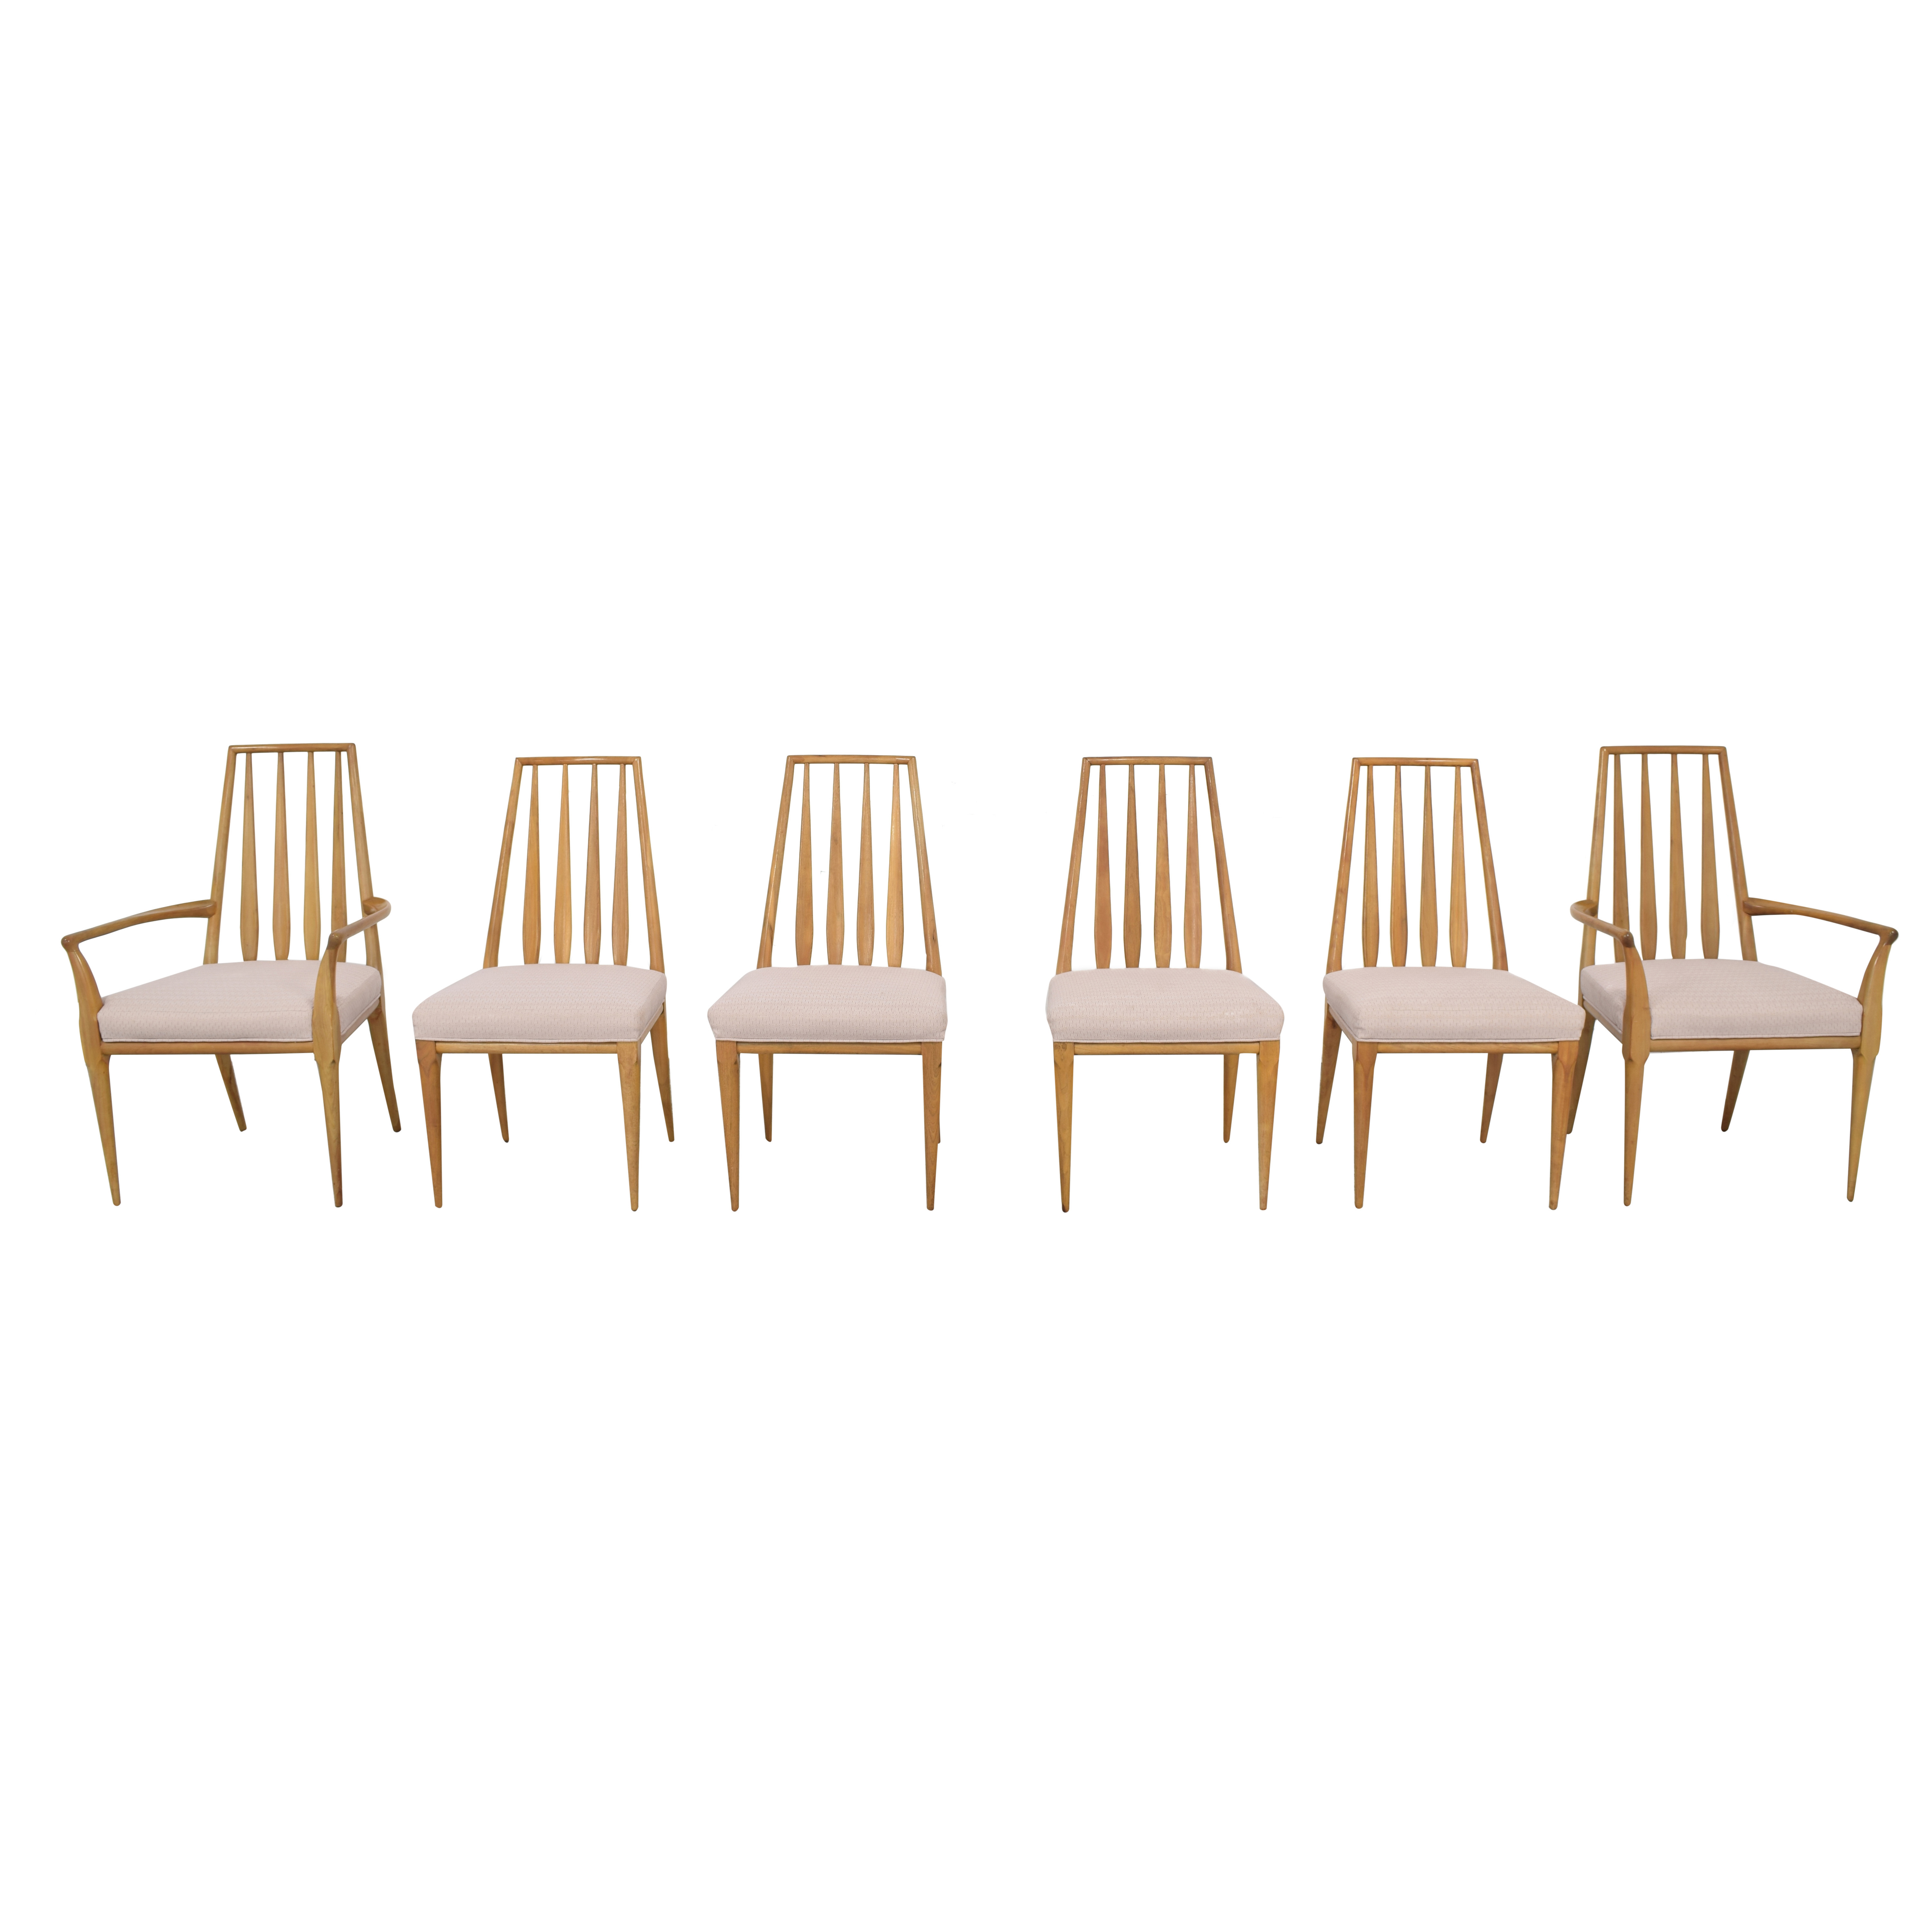 Johnson Furniture Johnson Furniture Spindle Back Dining Chairs discount